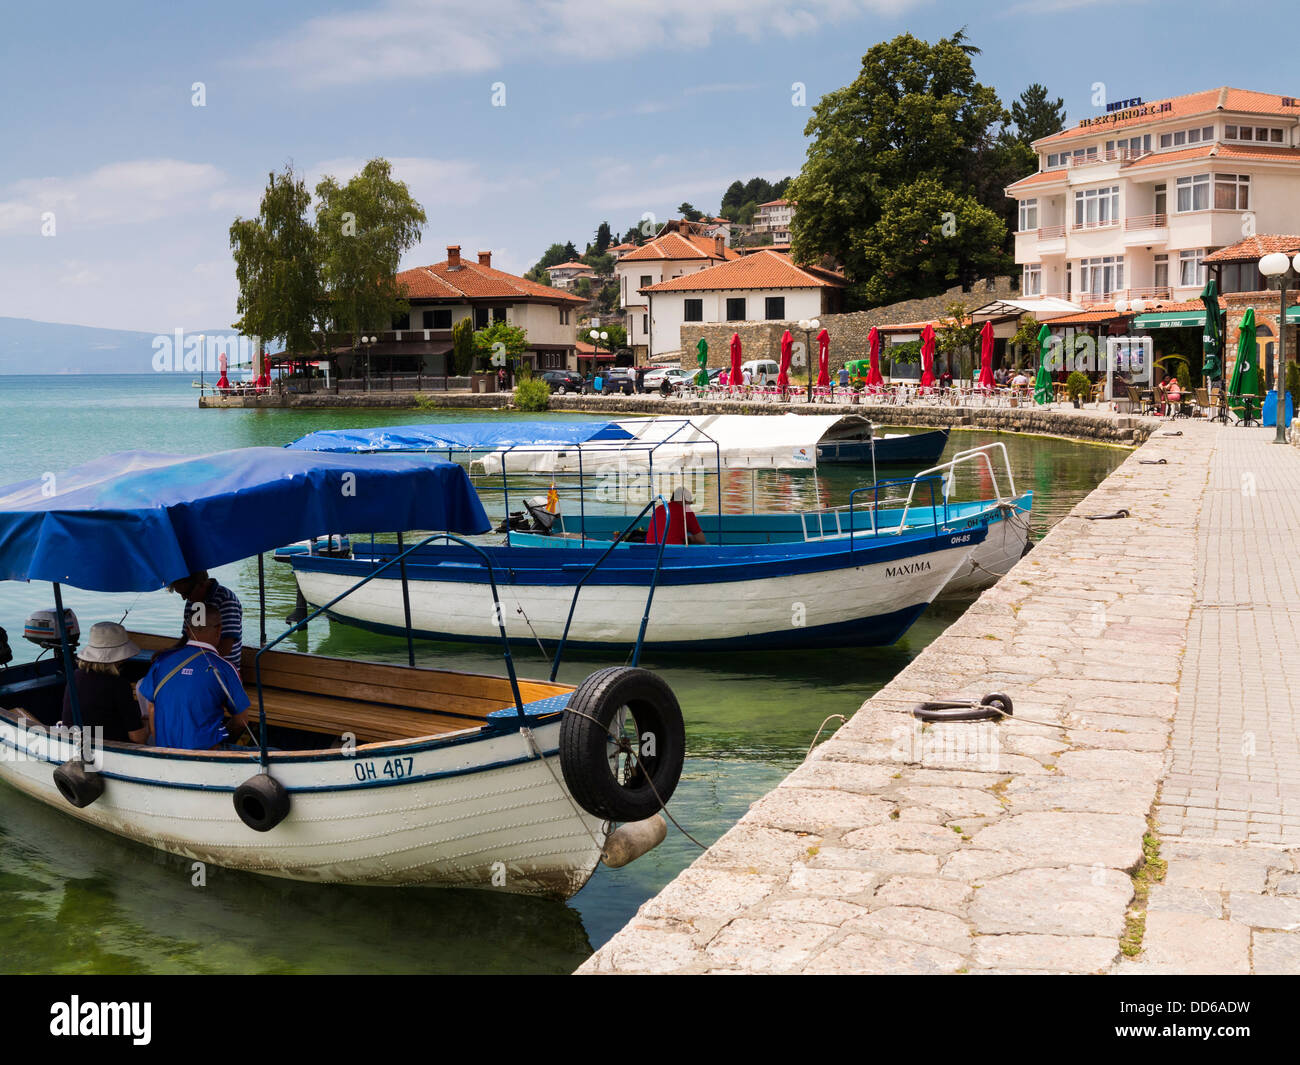 Harbour in Ohrid, on Lake Ohrid, Macedonia, Europe - Stock Image